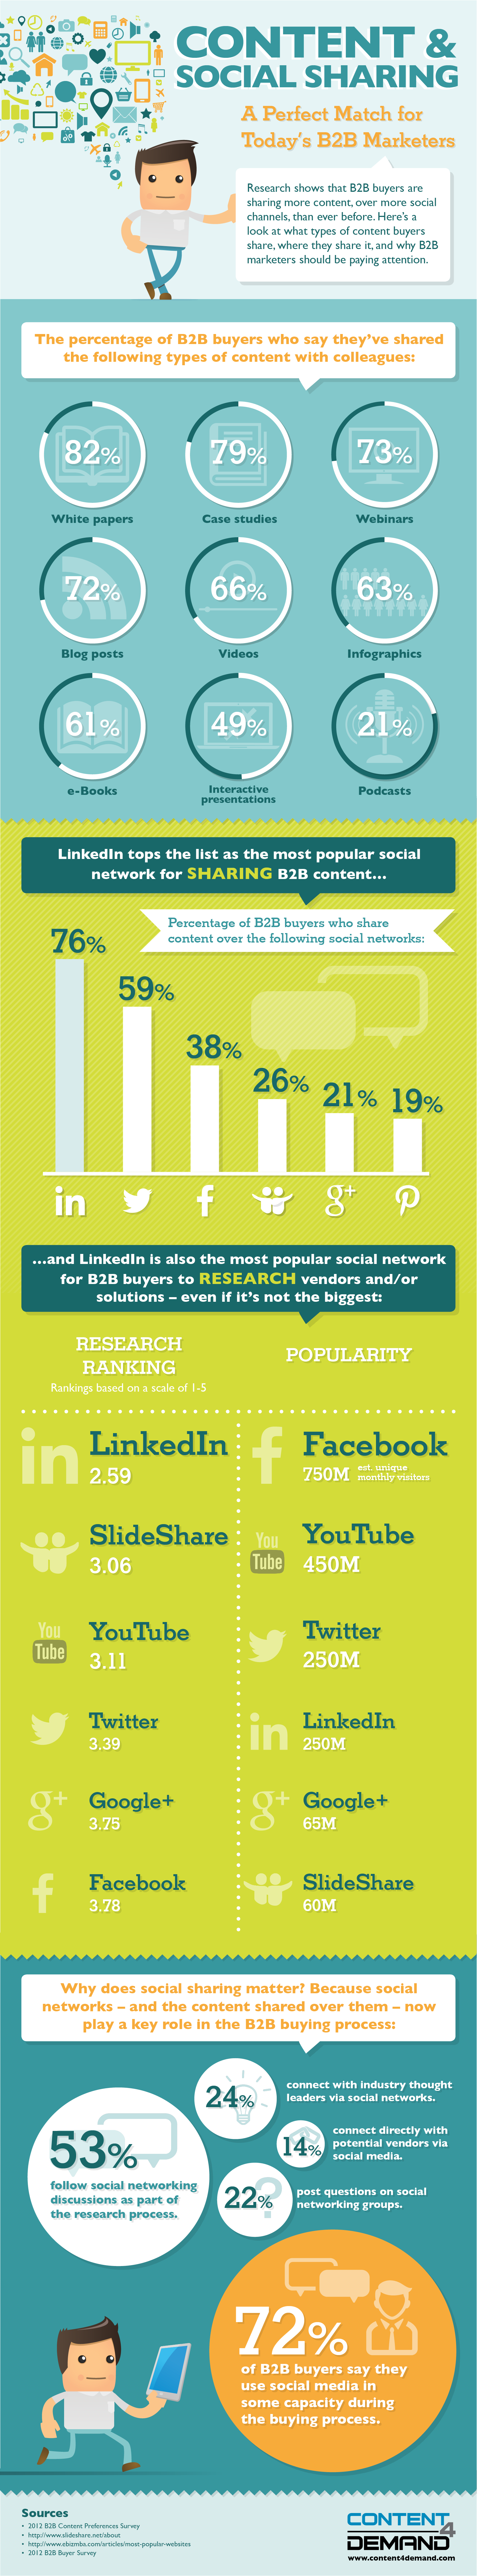 C4D_Infographic-Content_and_Social_Sharing